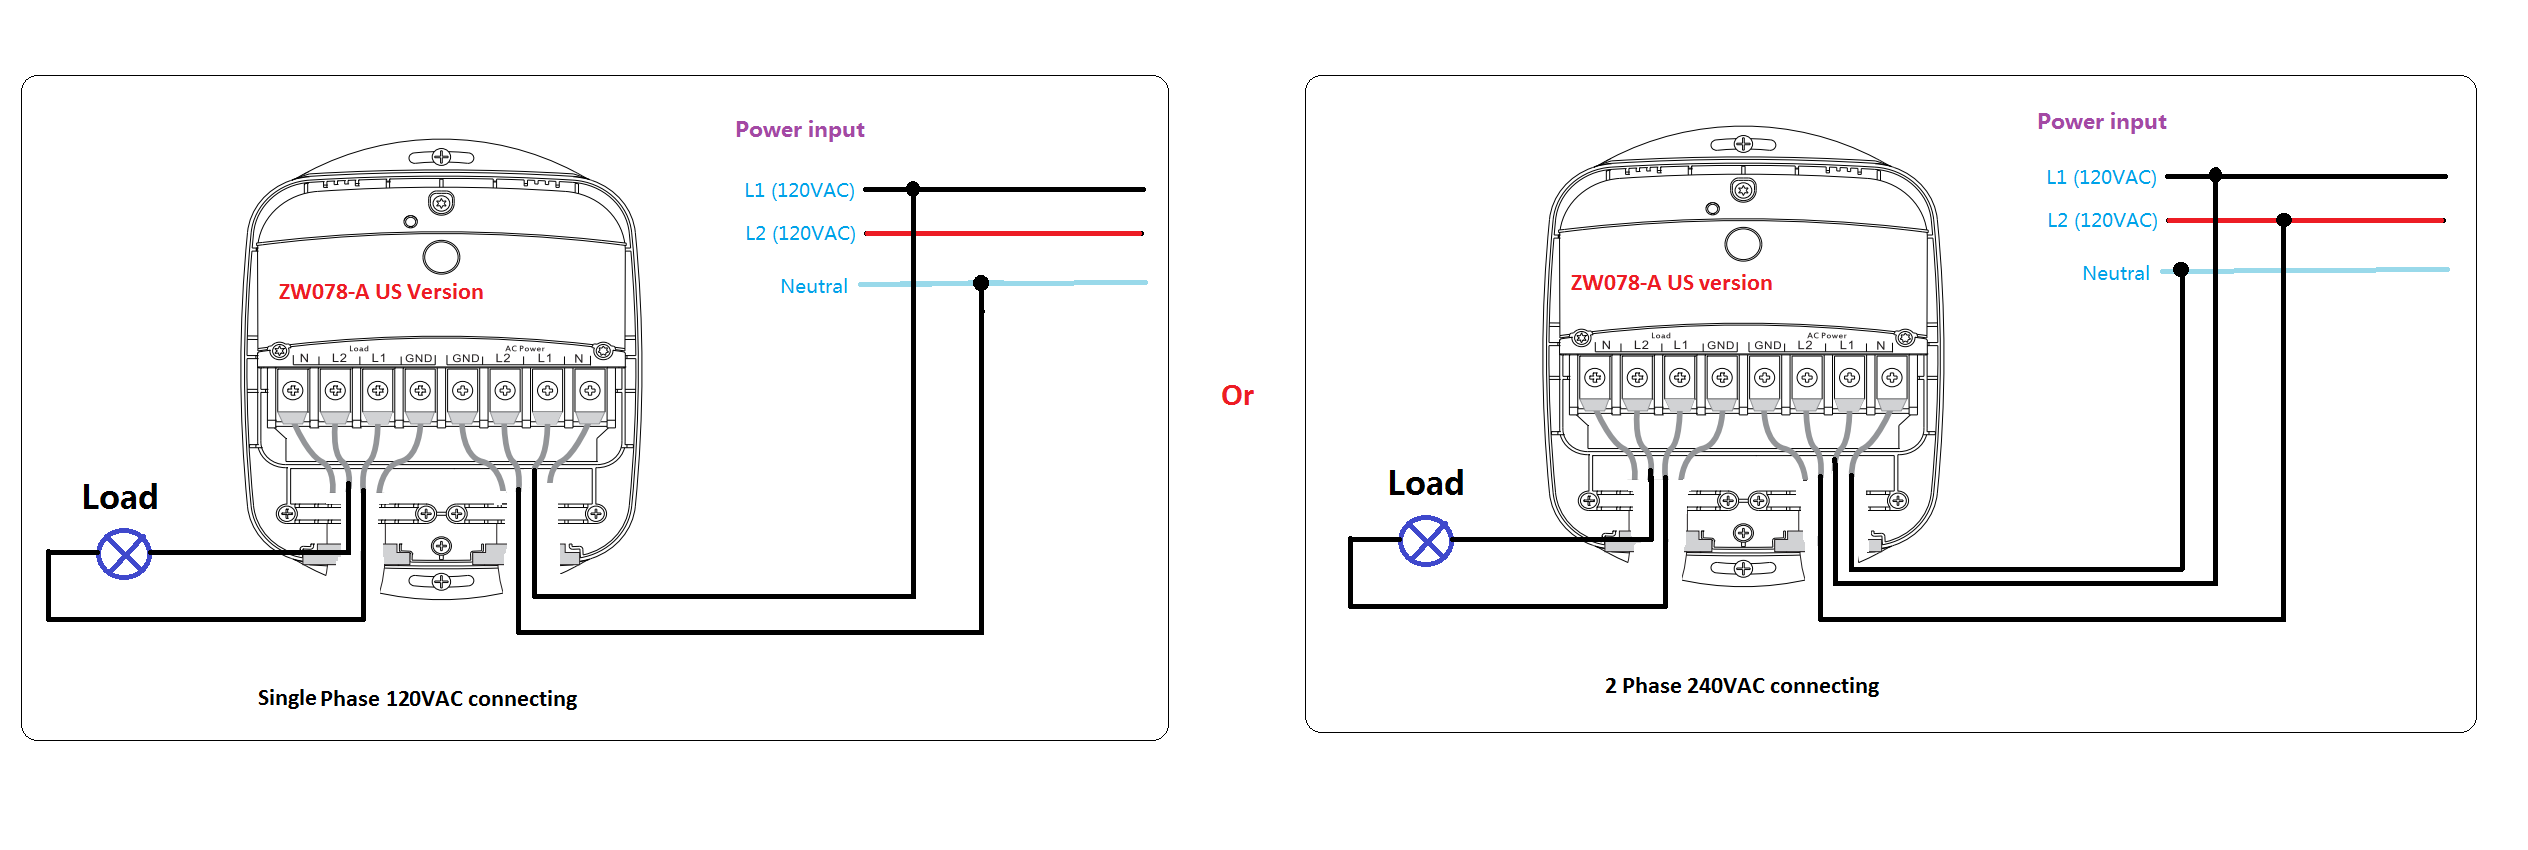 heavy duty smart switch gen wiring diagrams aeotec by aeon labs diagram 1 wiring hdss on a 1 phase 120vac connection diagram 2 wiring hdss on a 2 phase 240vac connection